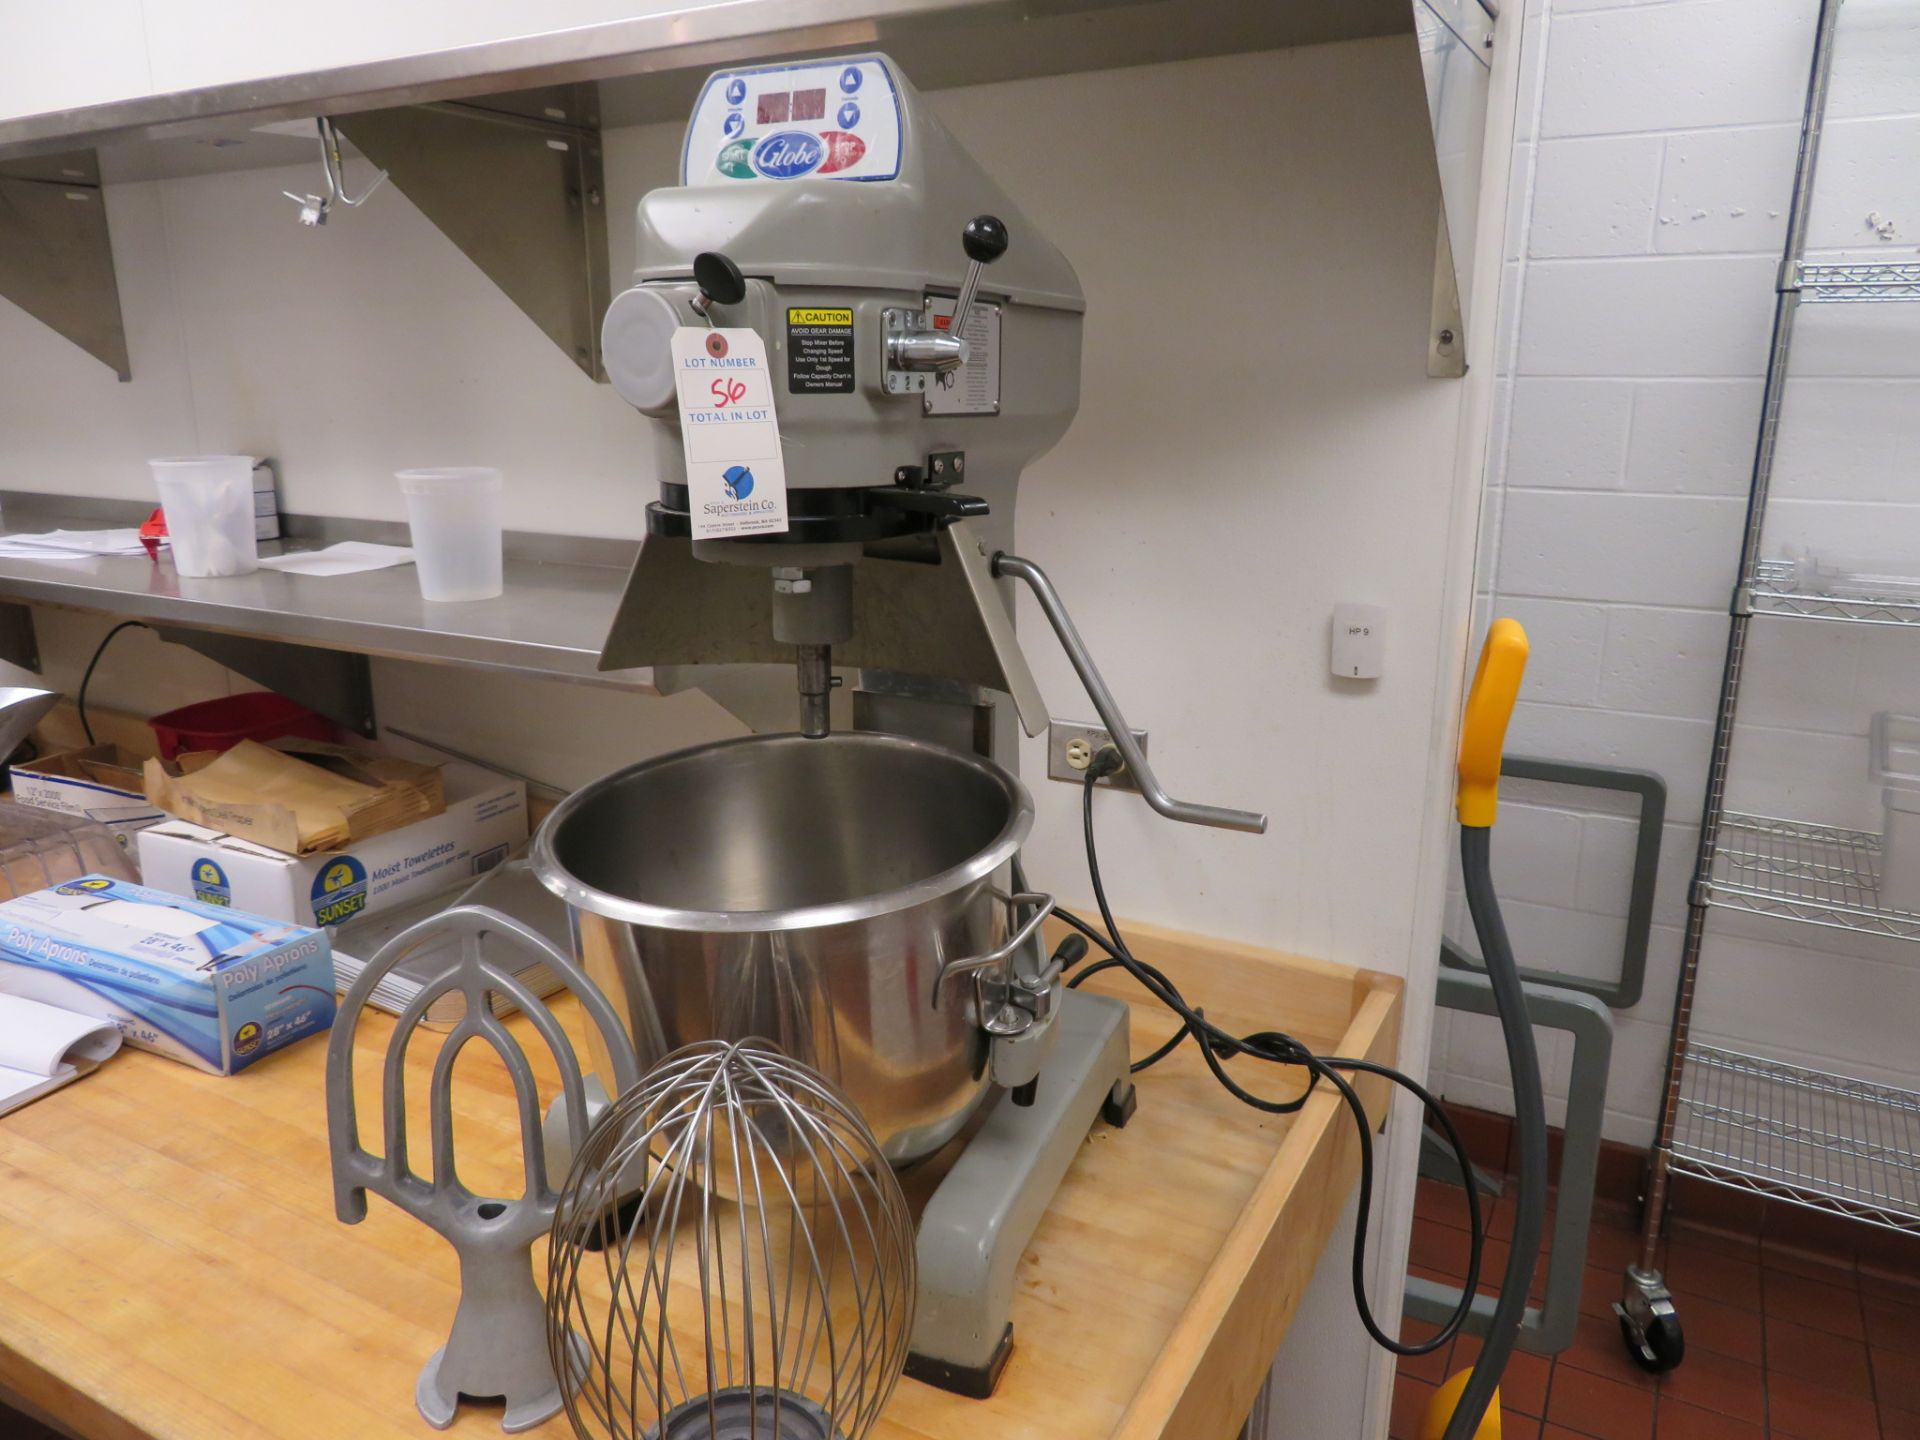 Lot 56 - Globe # SP20 -1/2 HP, 20Qt Single Phase C.T. Mixer, S/N: 72-31784 w/ Bowl Whip & Paddle